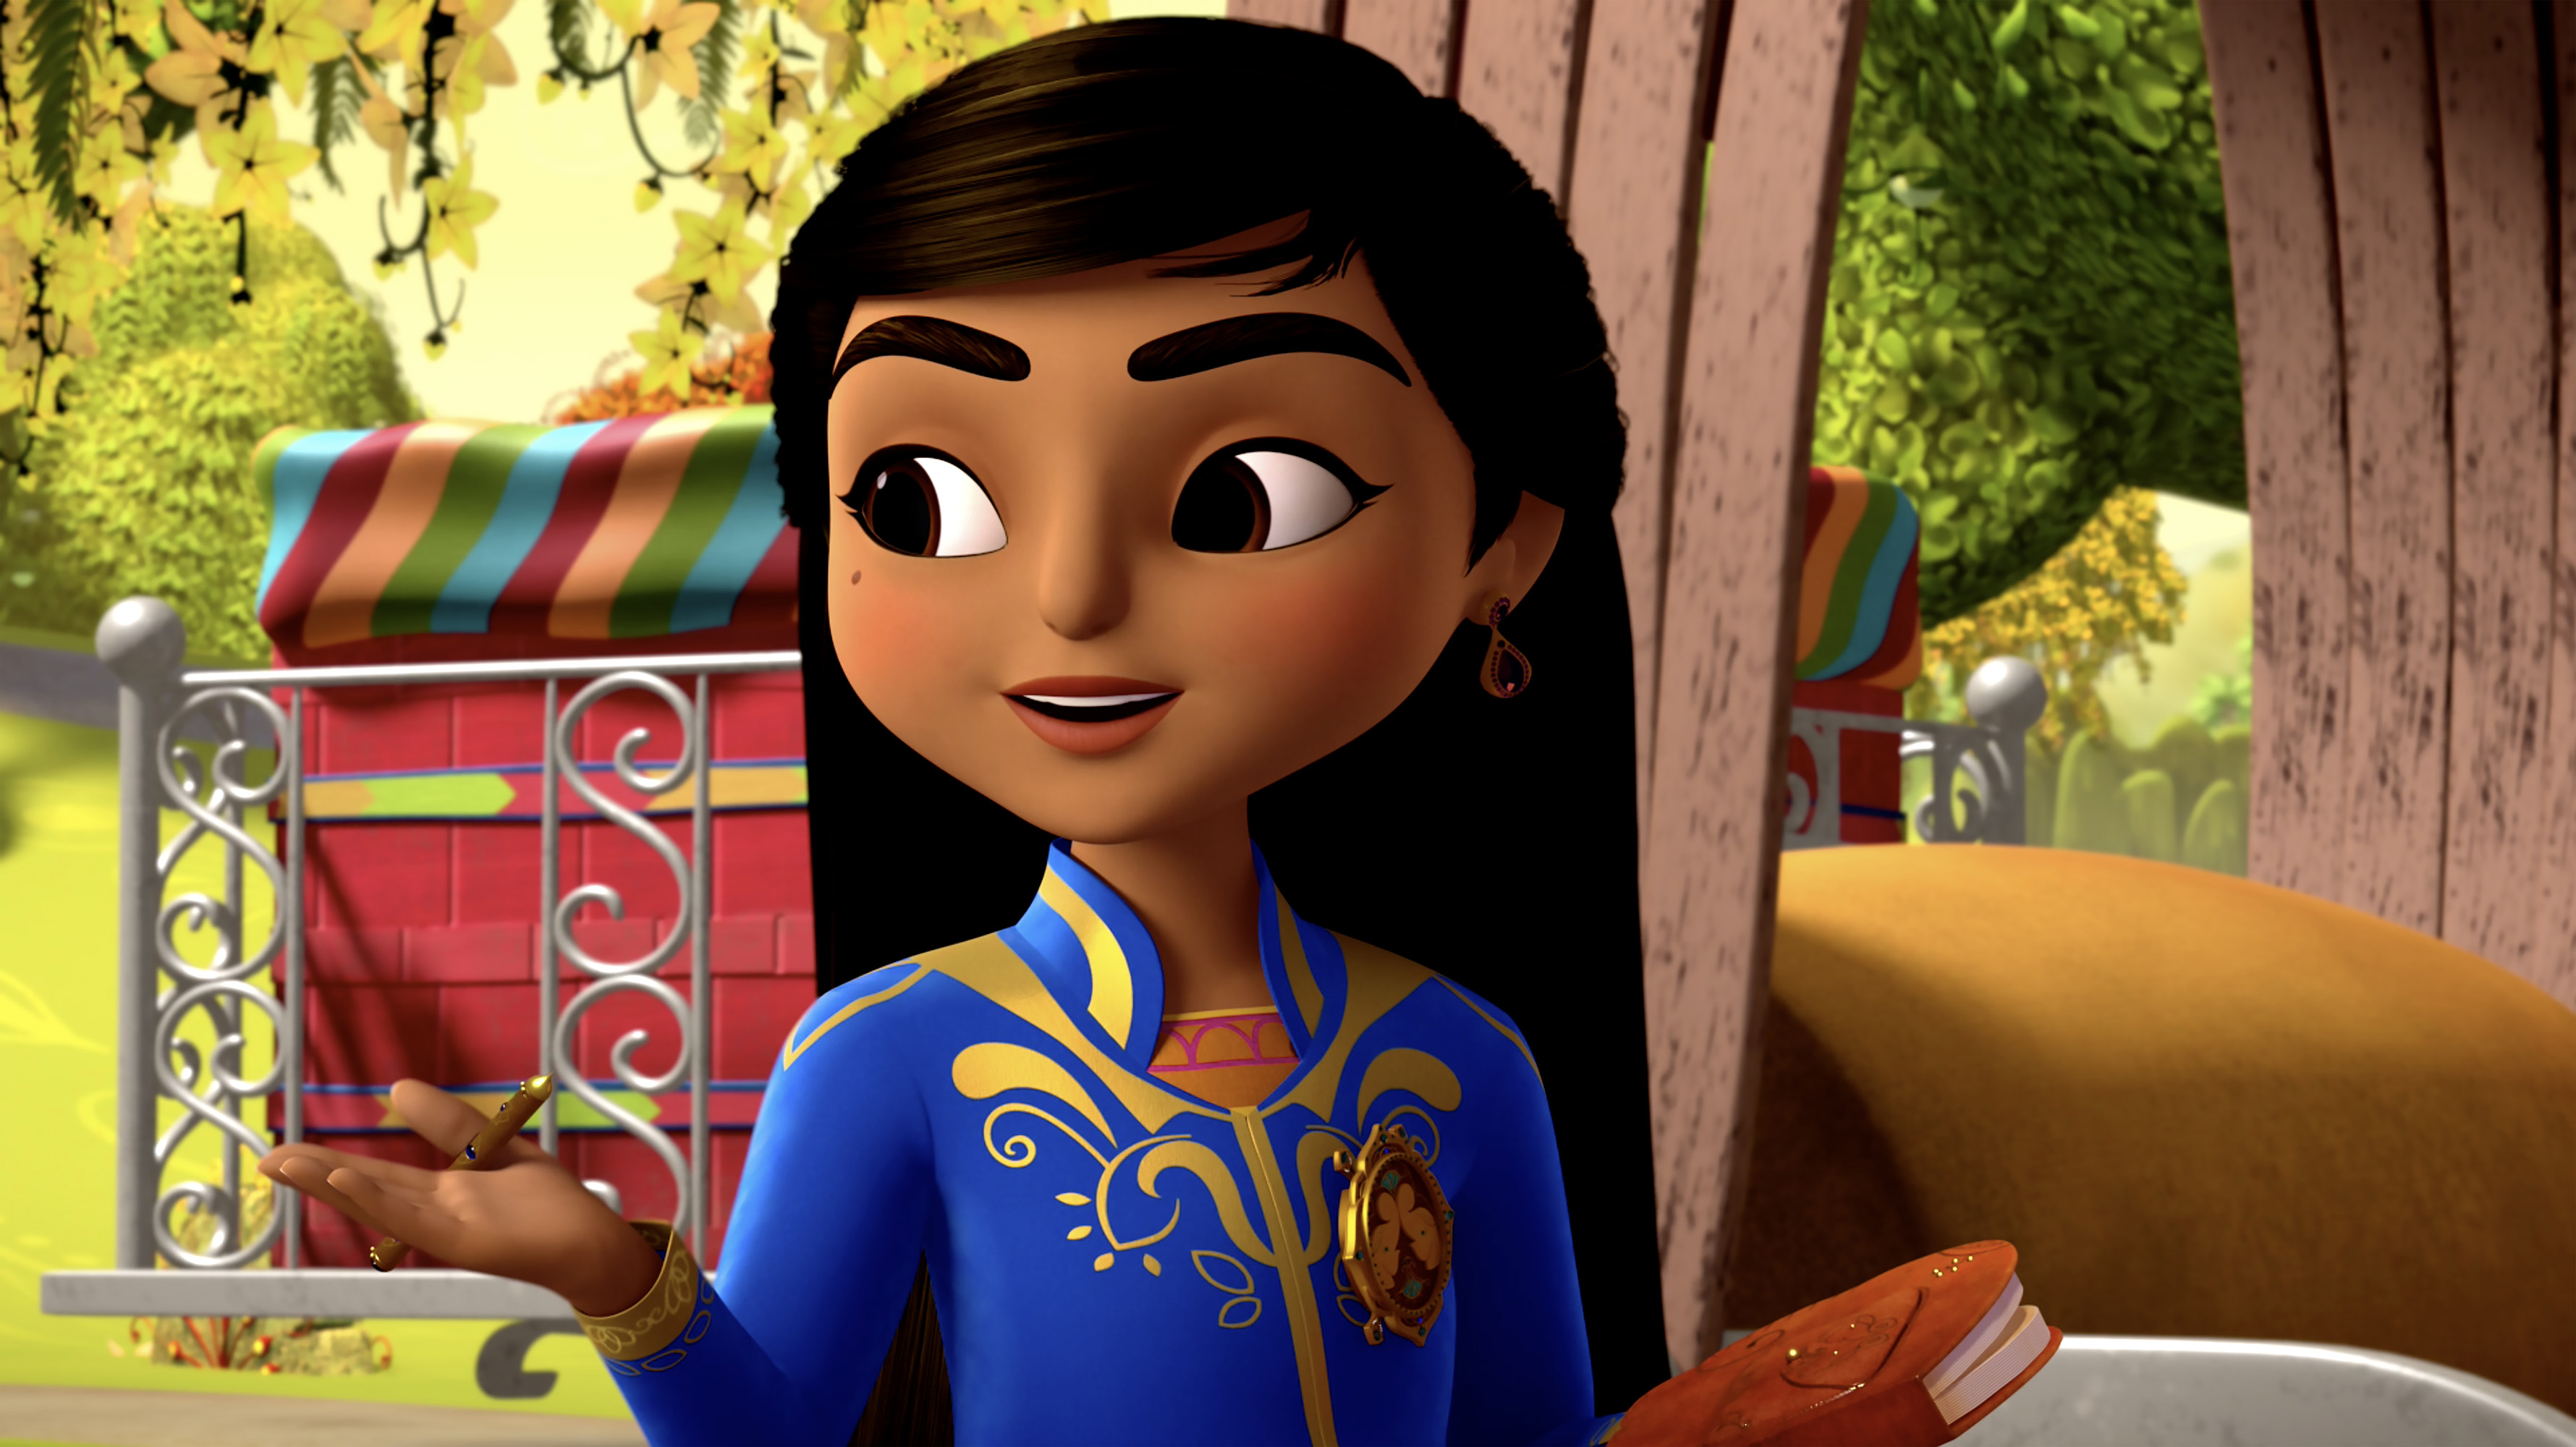 Scene from Mira, Royal Detective (Disney Junior)